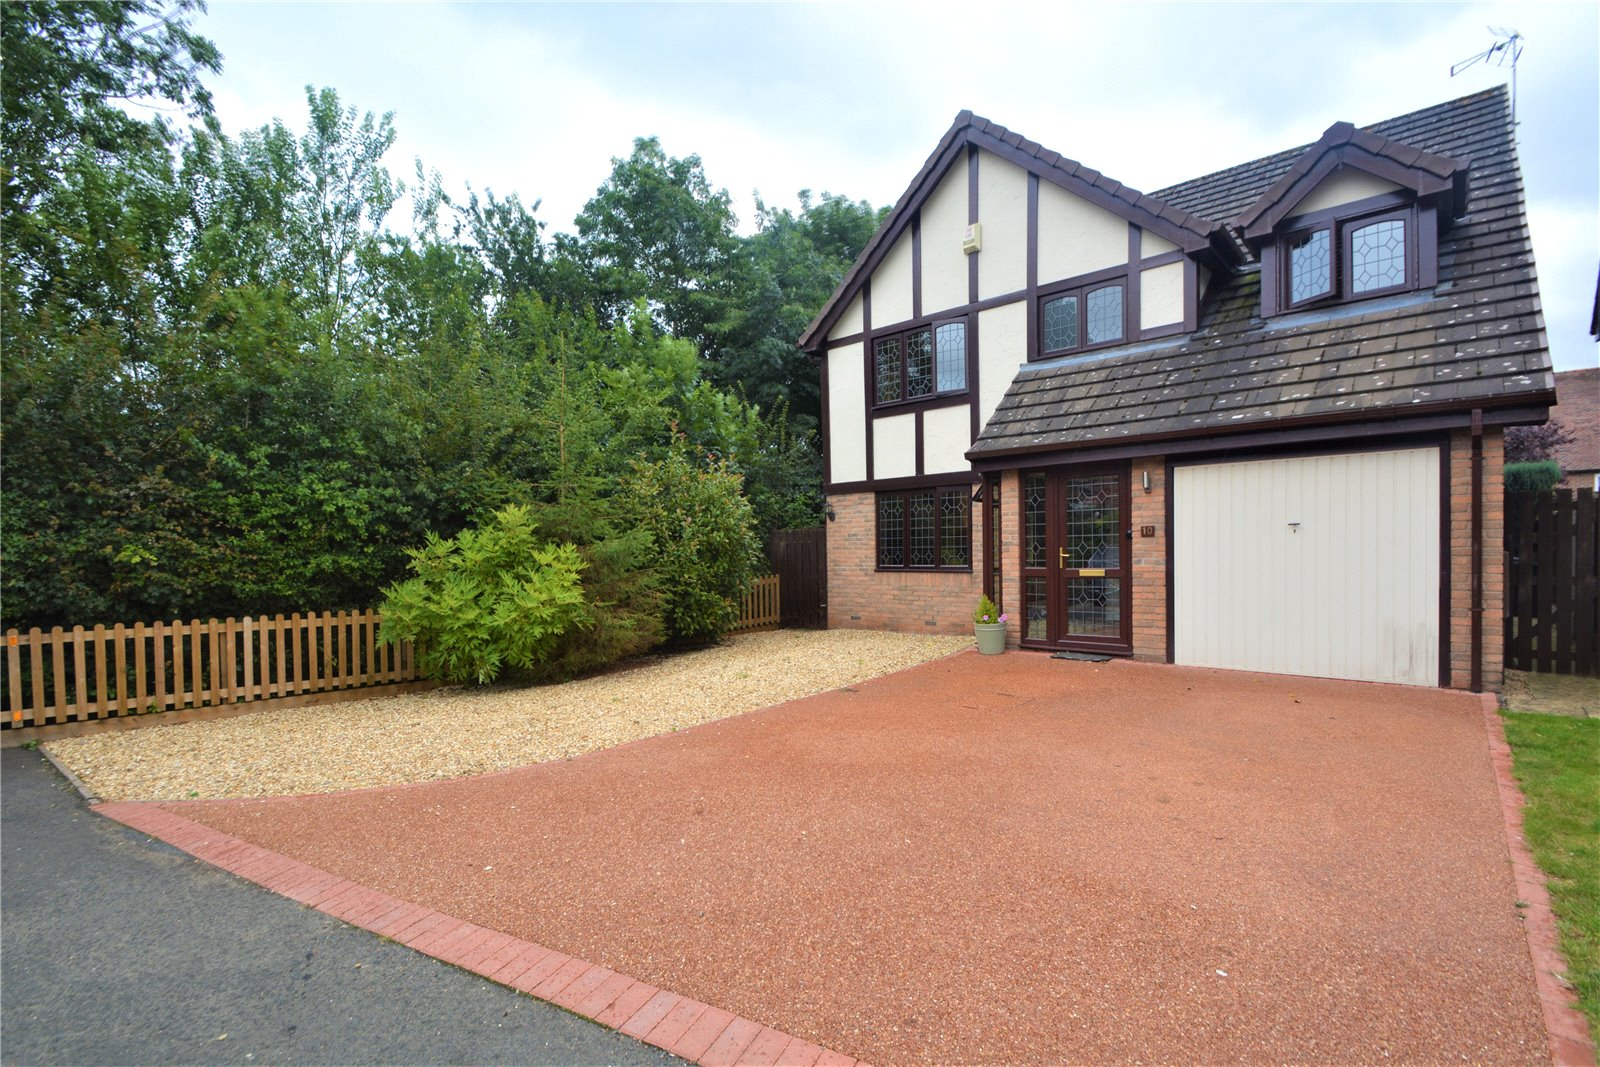 10 Abbotts Way, Bridgnorth, Shropshire, WV16